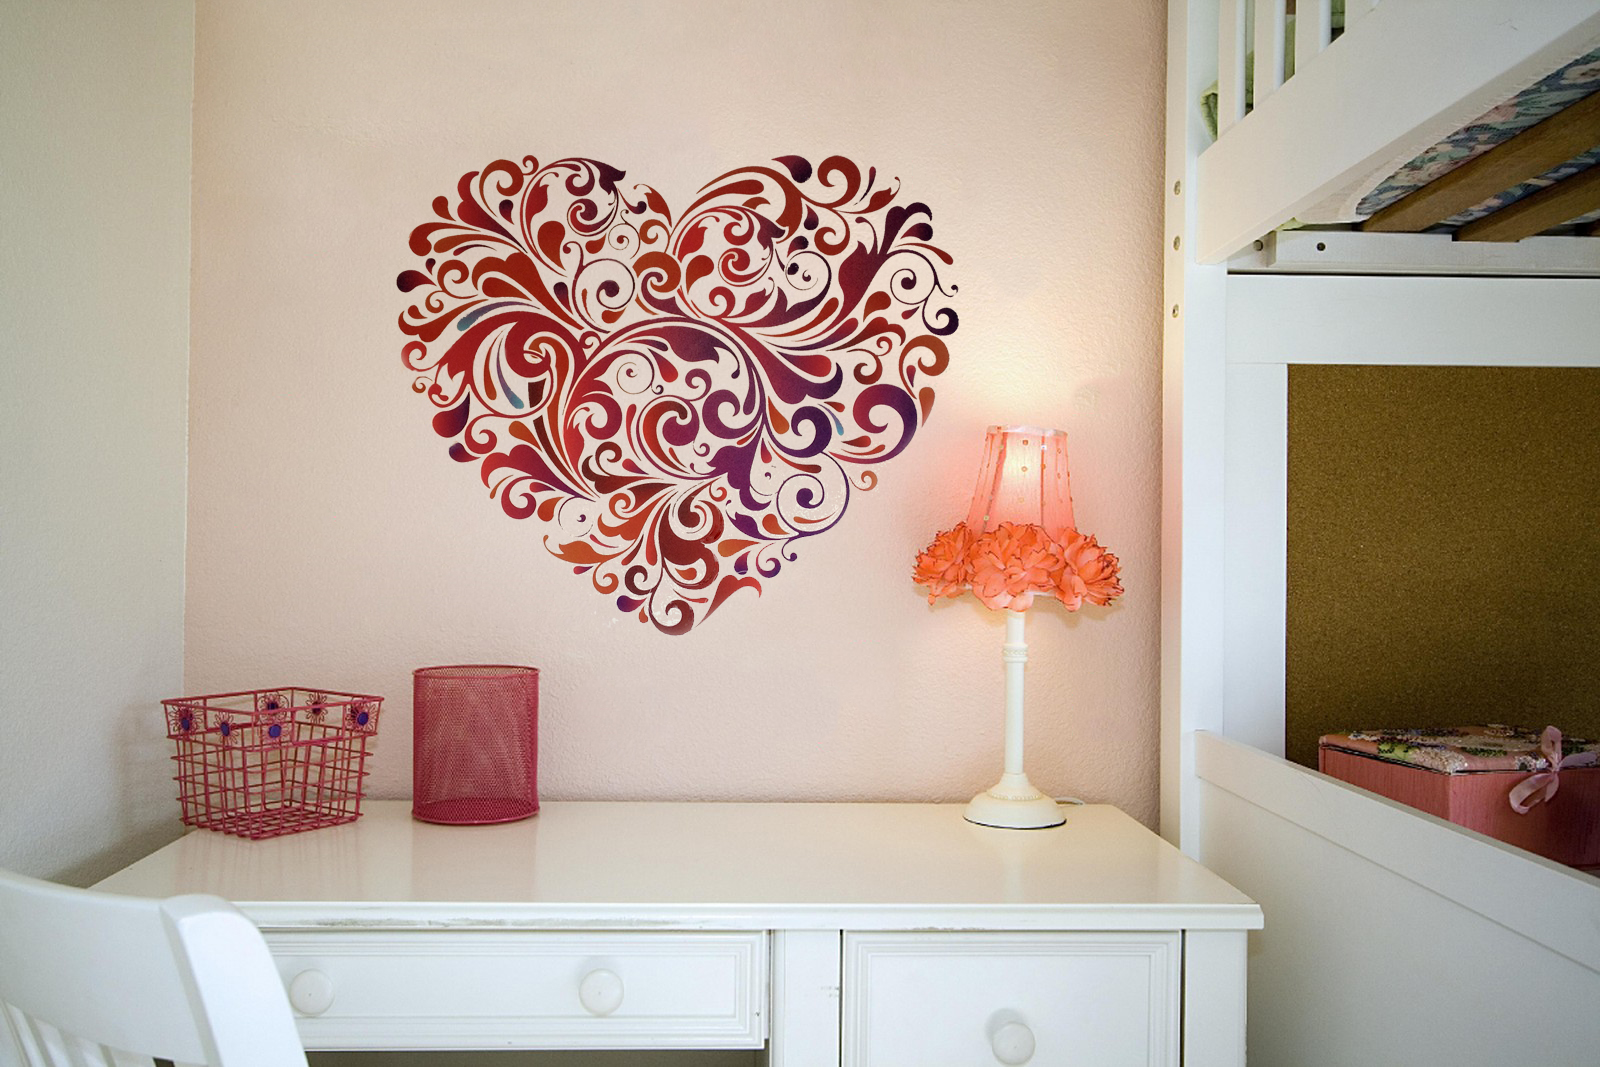 Wall Art Ideas: Make Your Home Beautiful With Unique Wall Decor